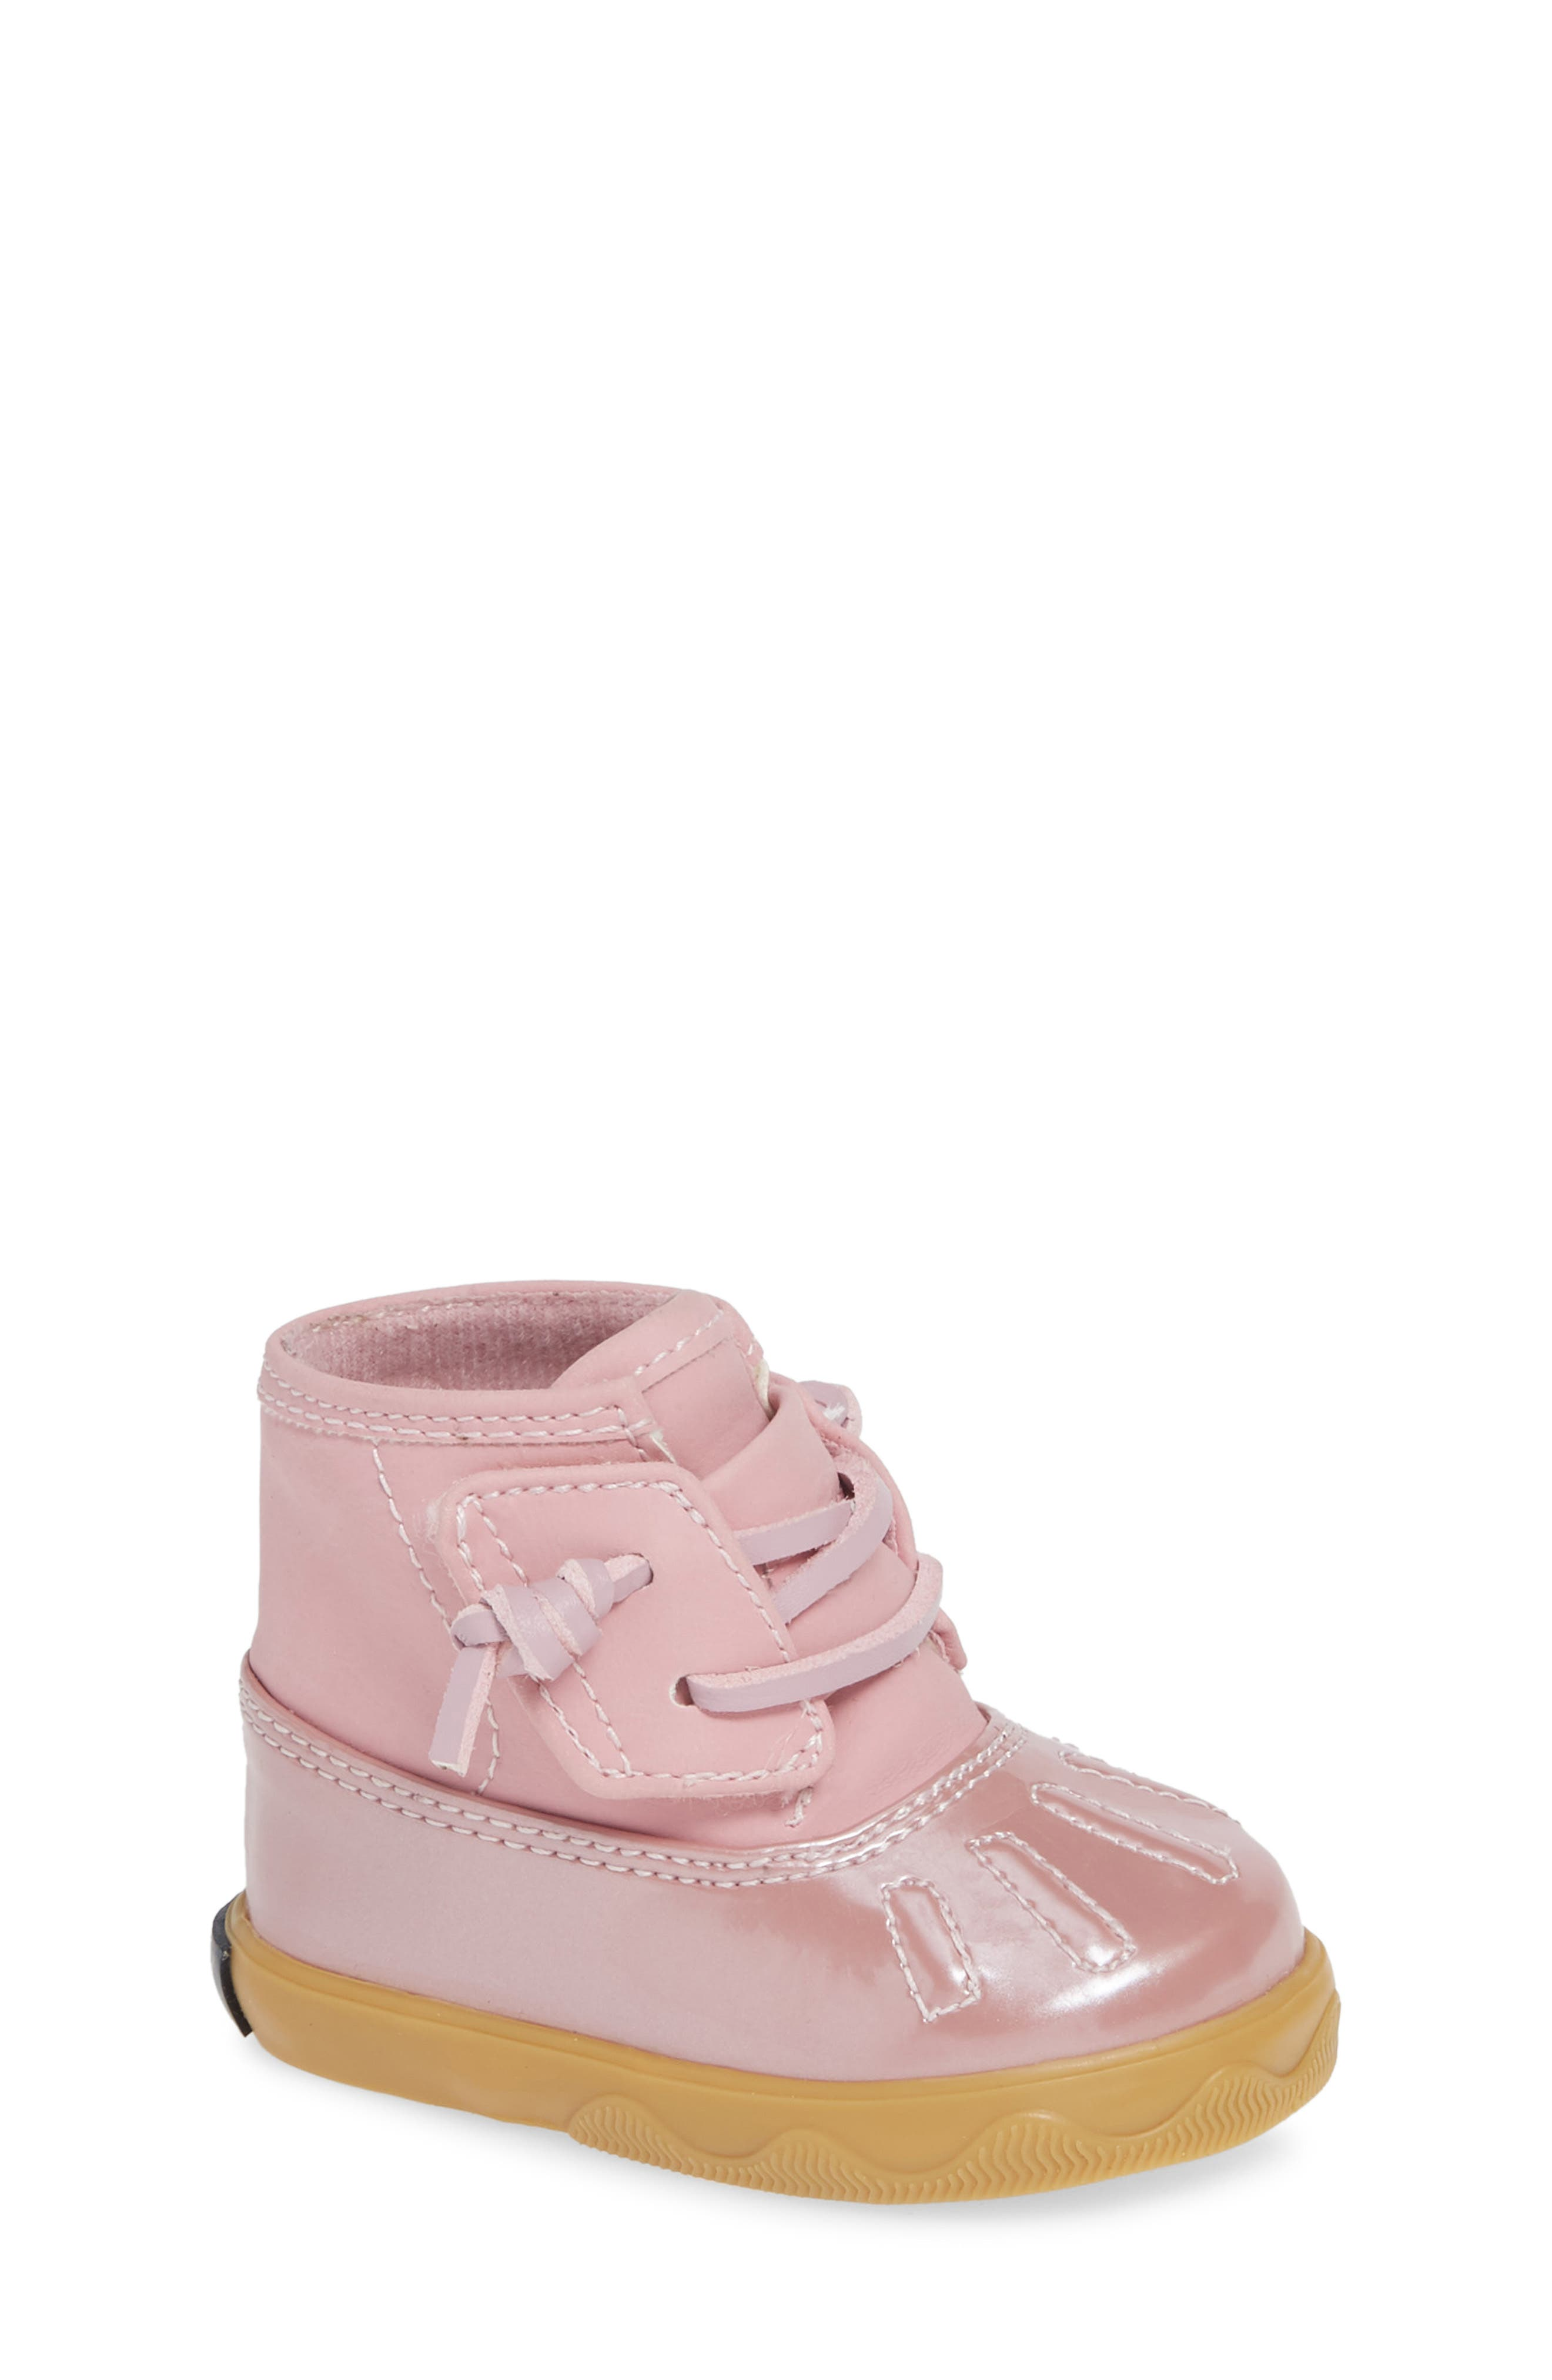 SPERRY KIDS, Sperry Icestorm Crib Duck Bootie, Main thumbnail 1, color, 650